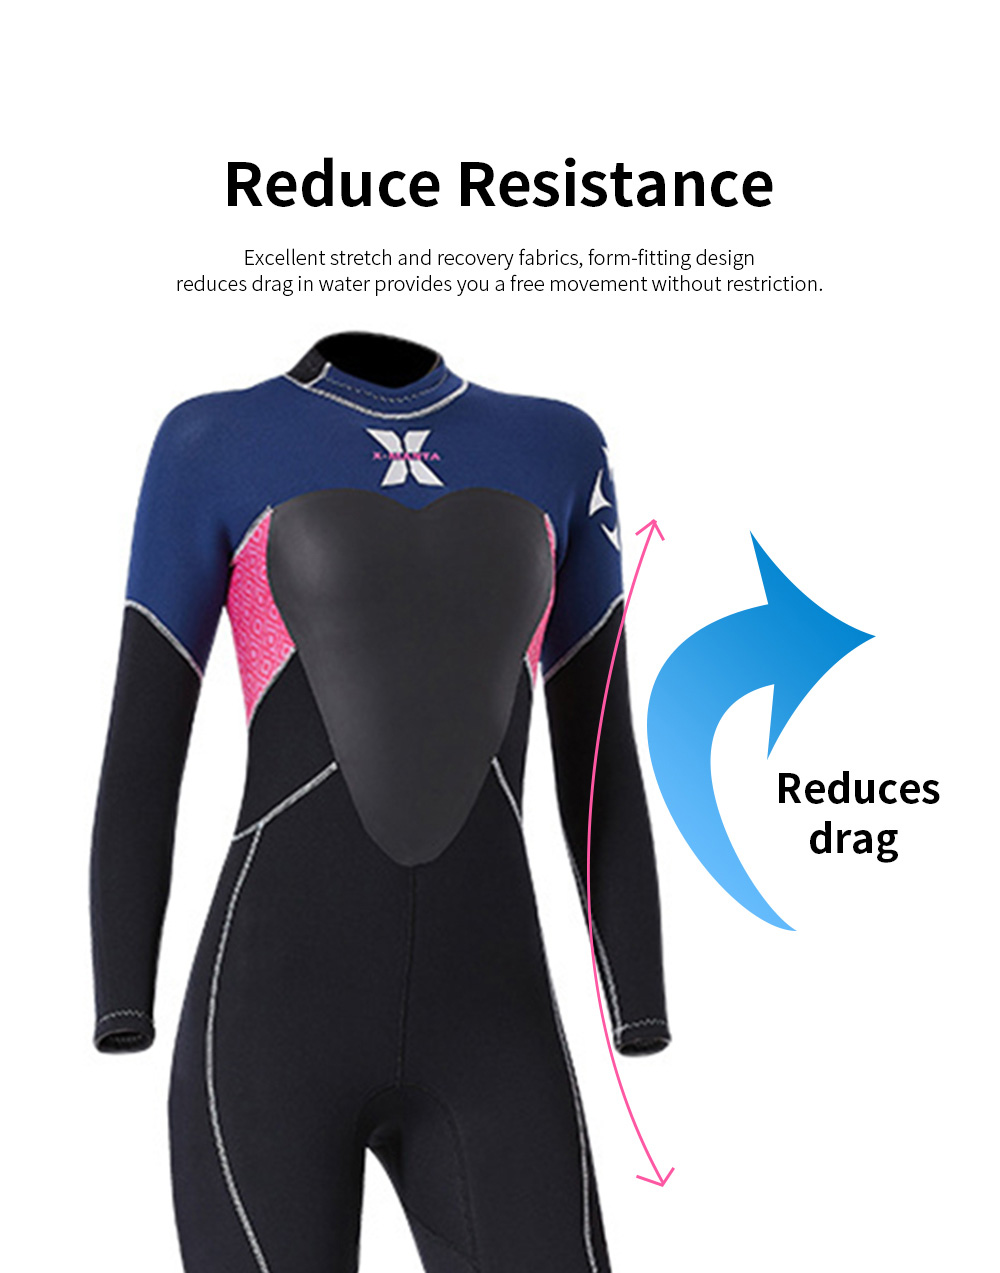 Women Full Body Wetsuits Premium 3mm Neoprene UV Protection Back Zip Diving Suits for Snorkeling Surfing Swimming Suit Jumpsuit 4